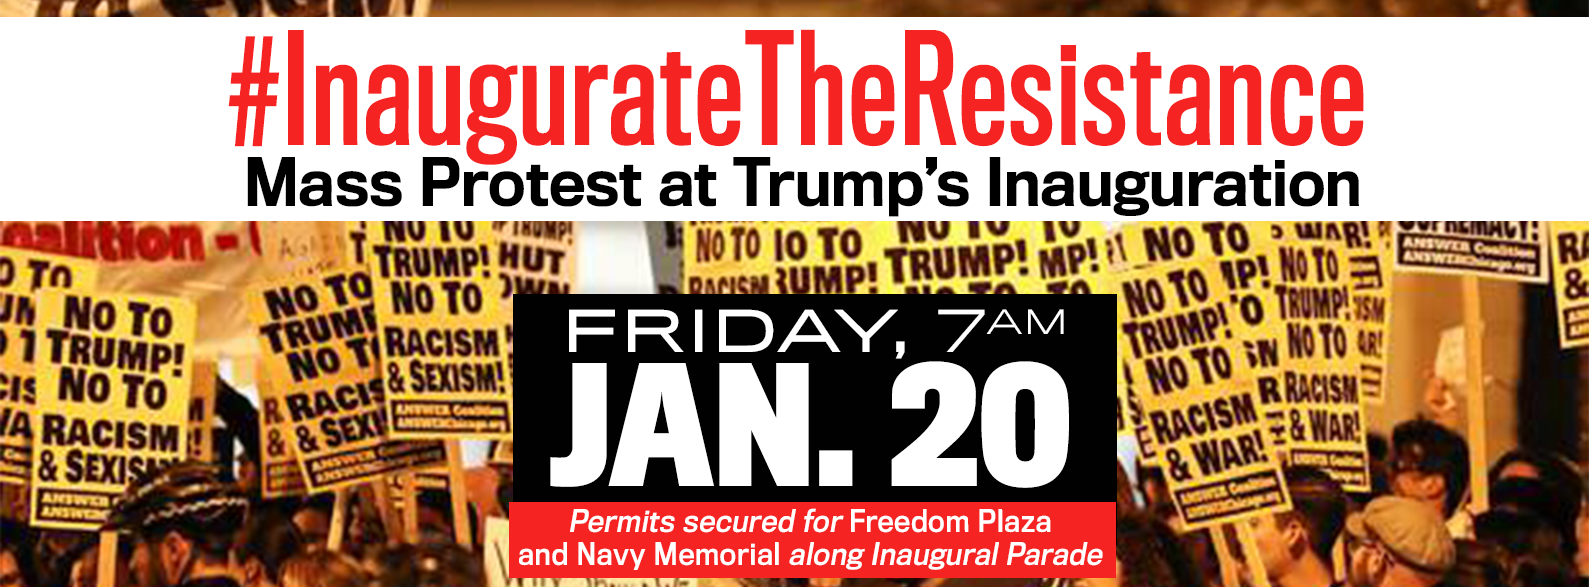 inauguration Rally Inaugurate the Resistance